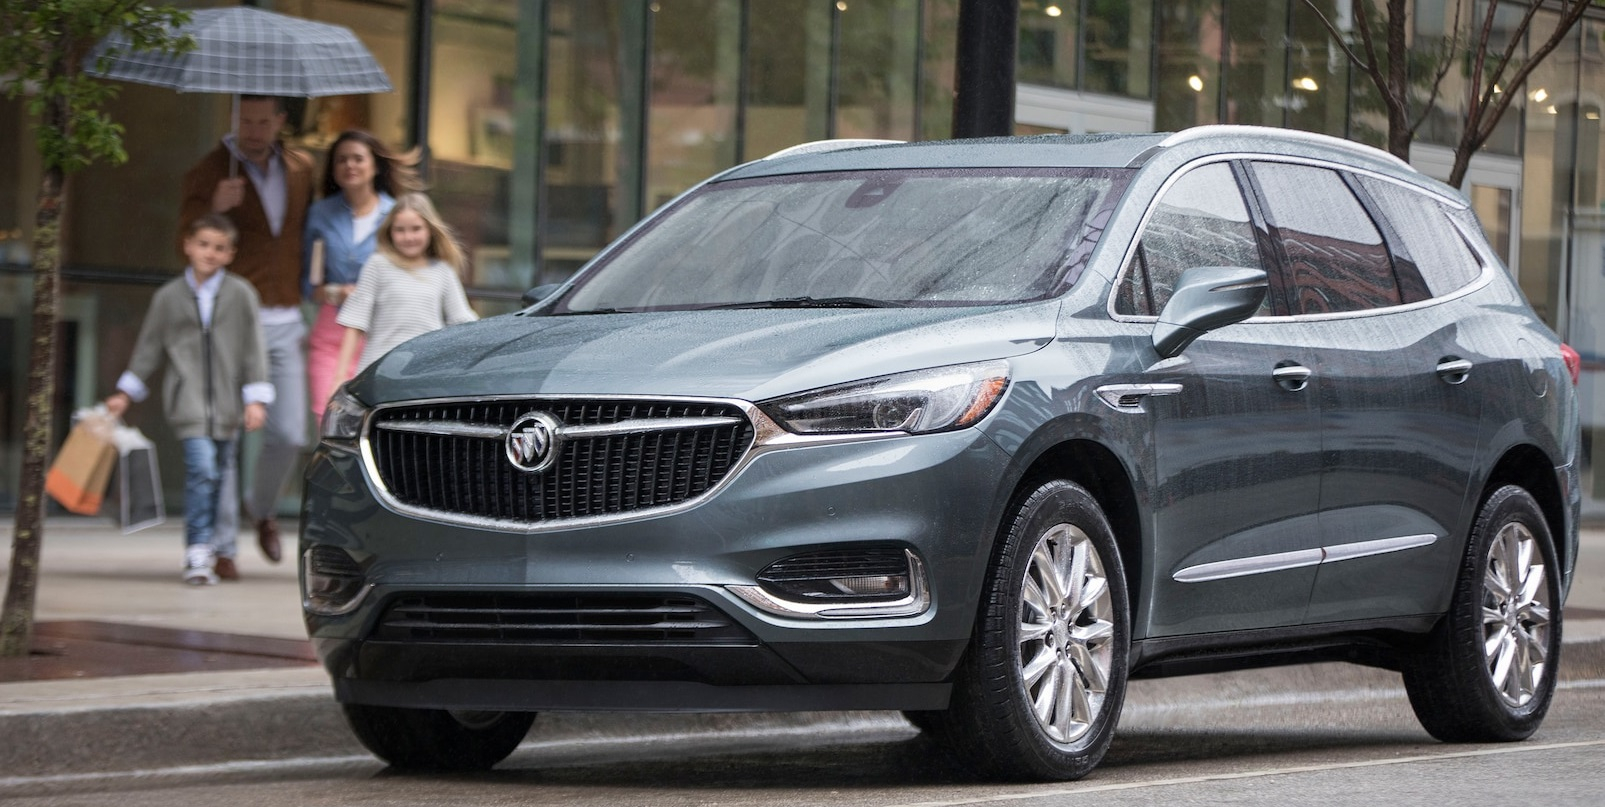 2019 Buick Enclave For Sale In Jonesboro, Ar - Cavenaugh 2021 Buick Enclave Oil Capacity, Owner's Manual, Problems